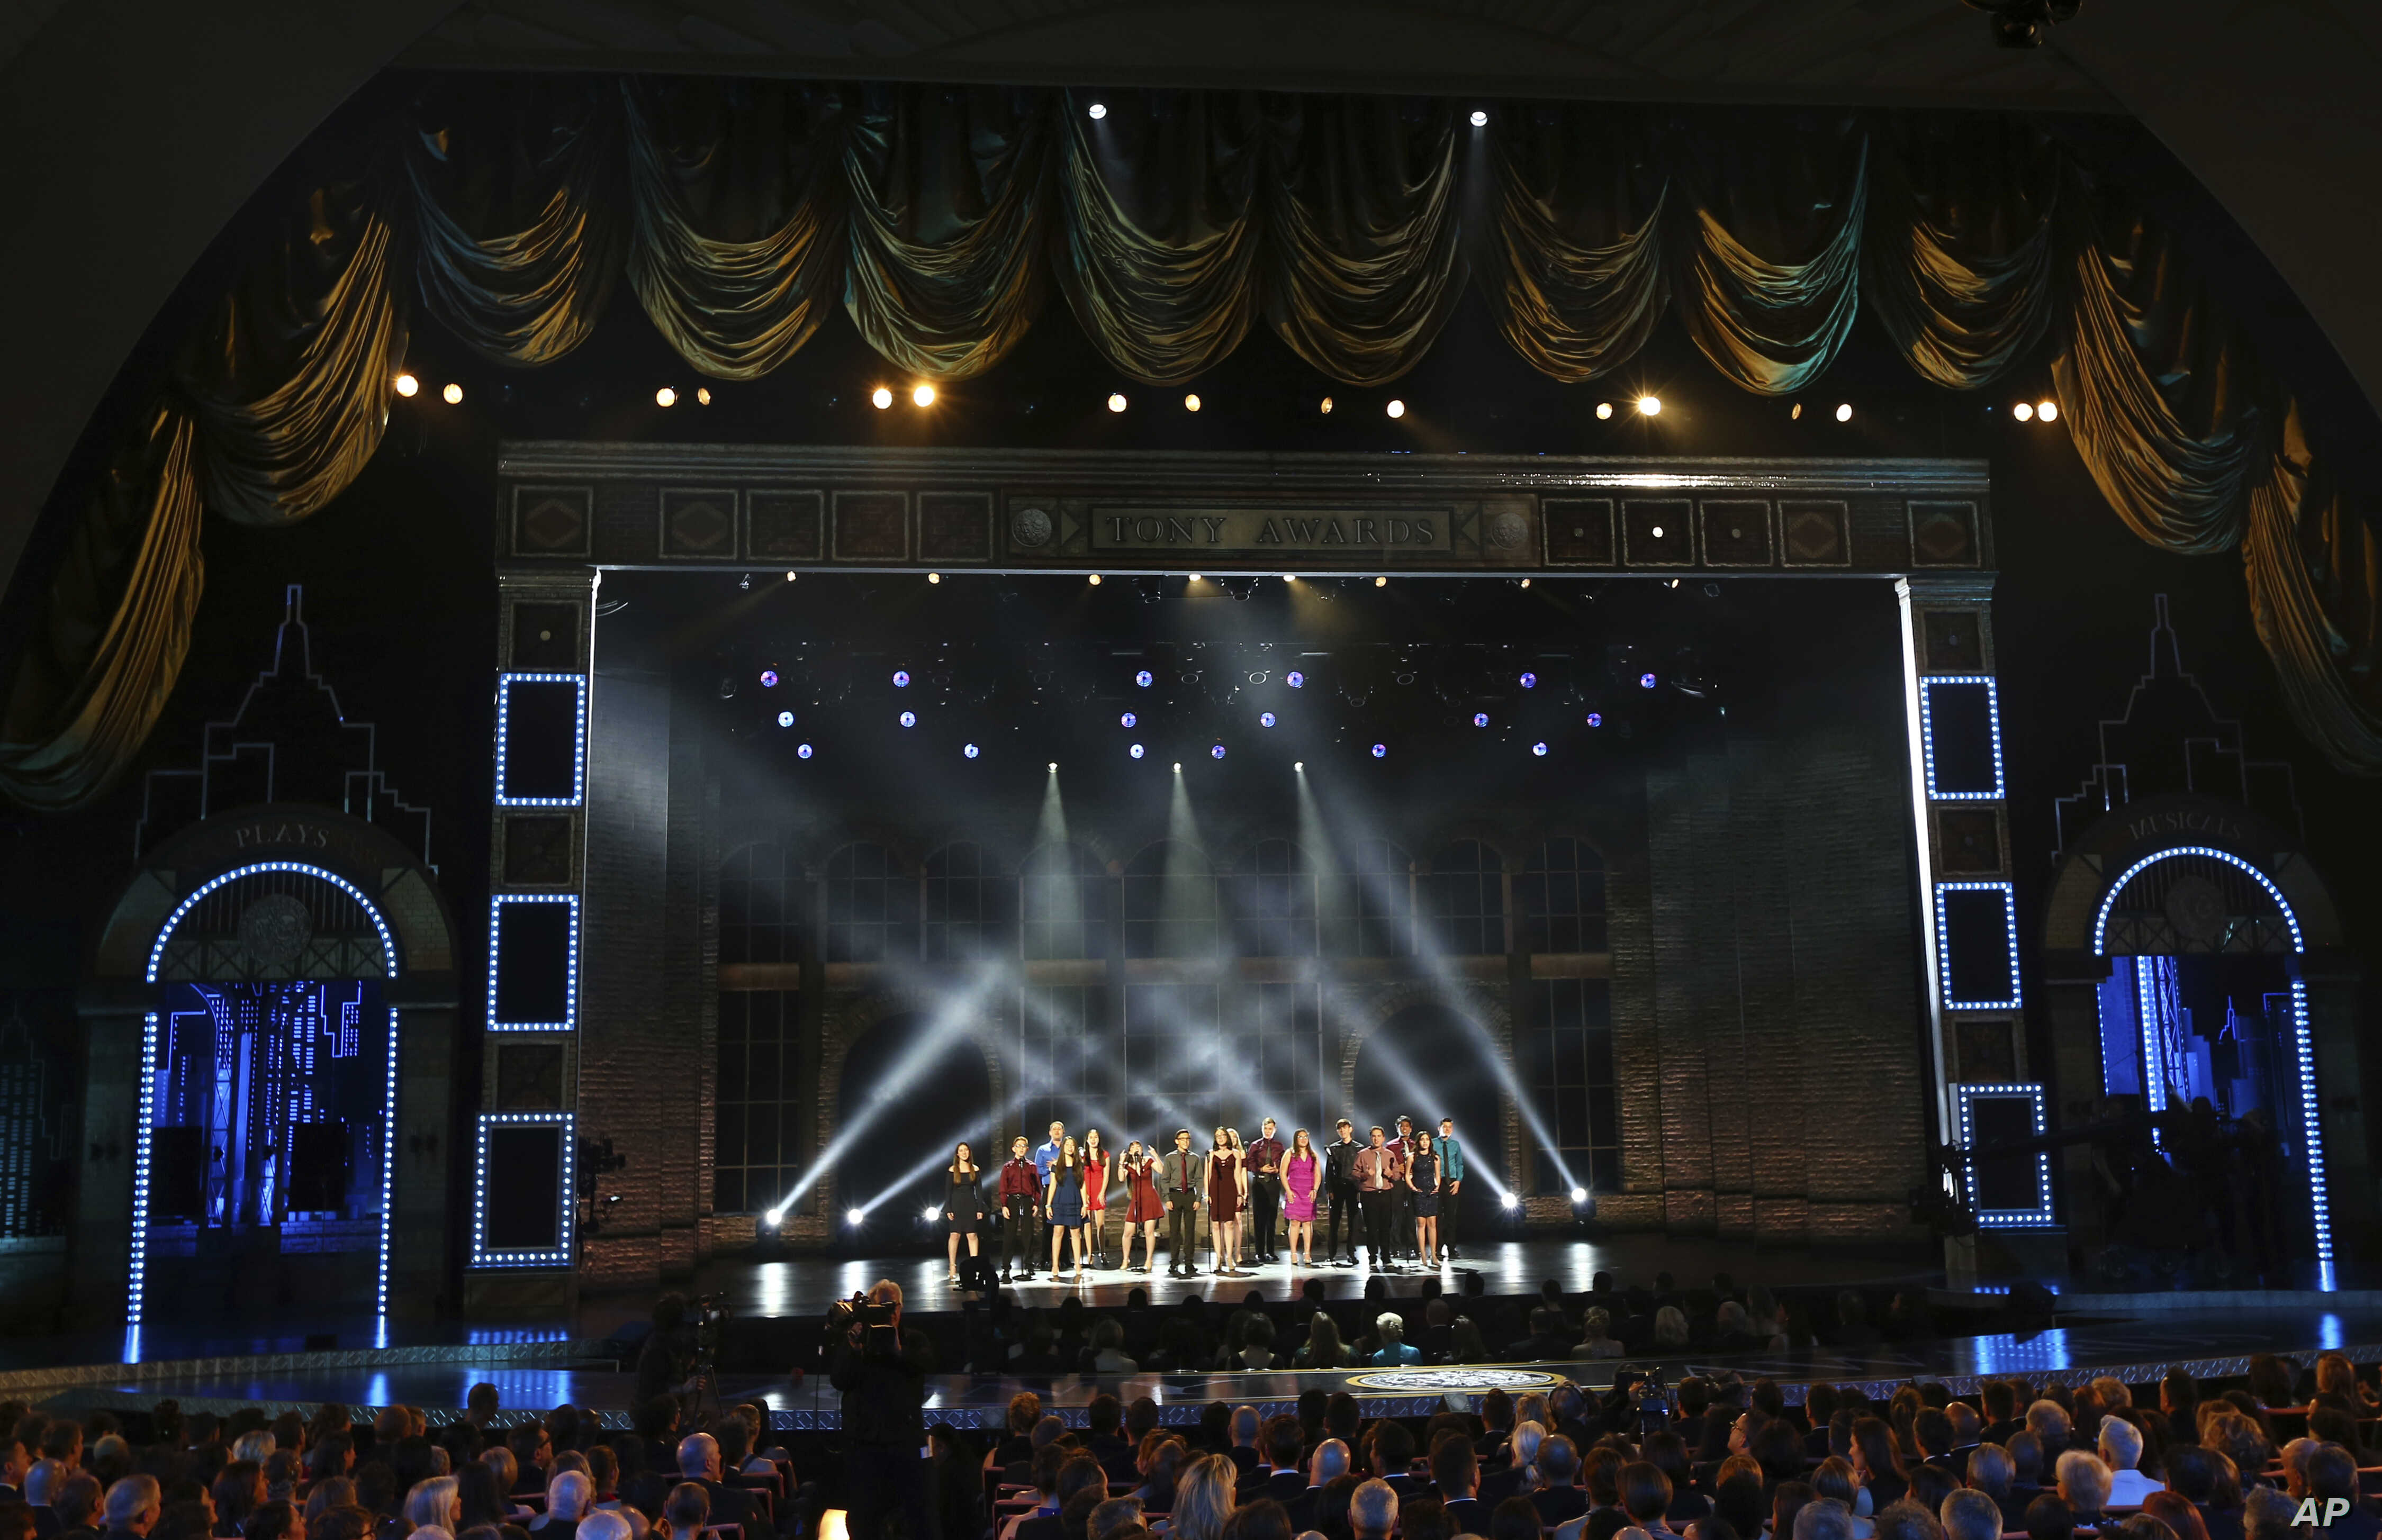 """The Marjory Stoneman Douglas High School drama department perform """"Seasons of Love"""" at the 72nd annual Tony Awards at Radio City Music Hall on Sunday, June 10, 2018, in New York."""